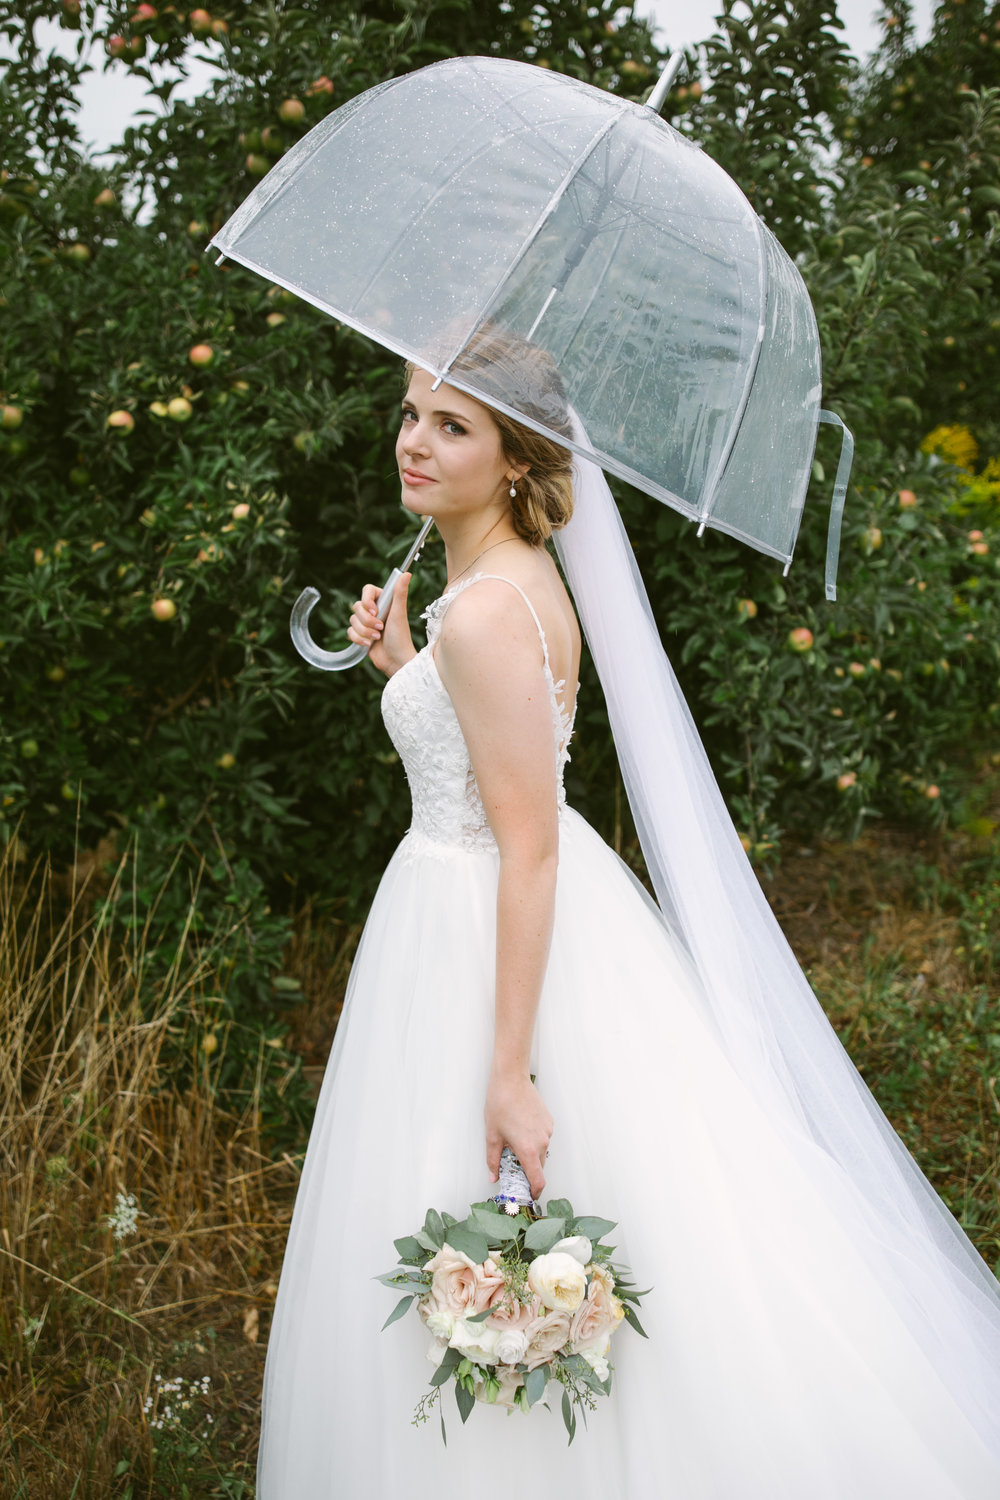 grandrapidswedding_grandrapids_grandrapidsweddingphotographer_countrywedding_orchardwedding_rainyweddingday_rain_summerwedding_grandrapidsphotographer_luna_lunawedding_jessicadarling_jdarlingphoto_ericaandaj044.jpg